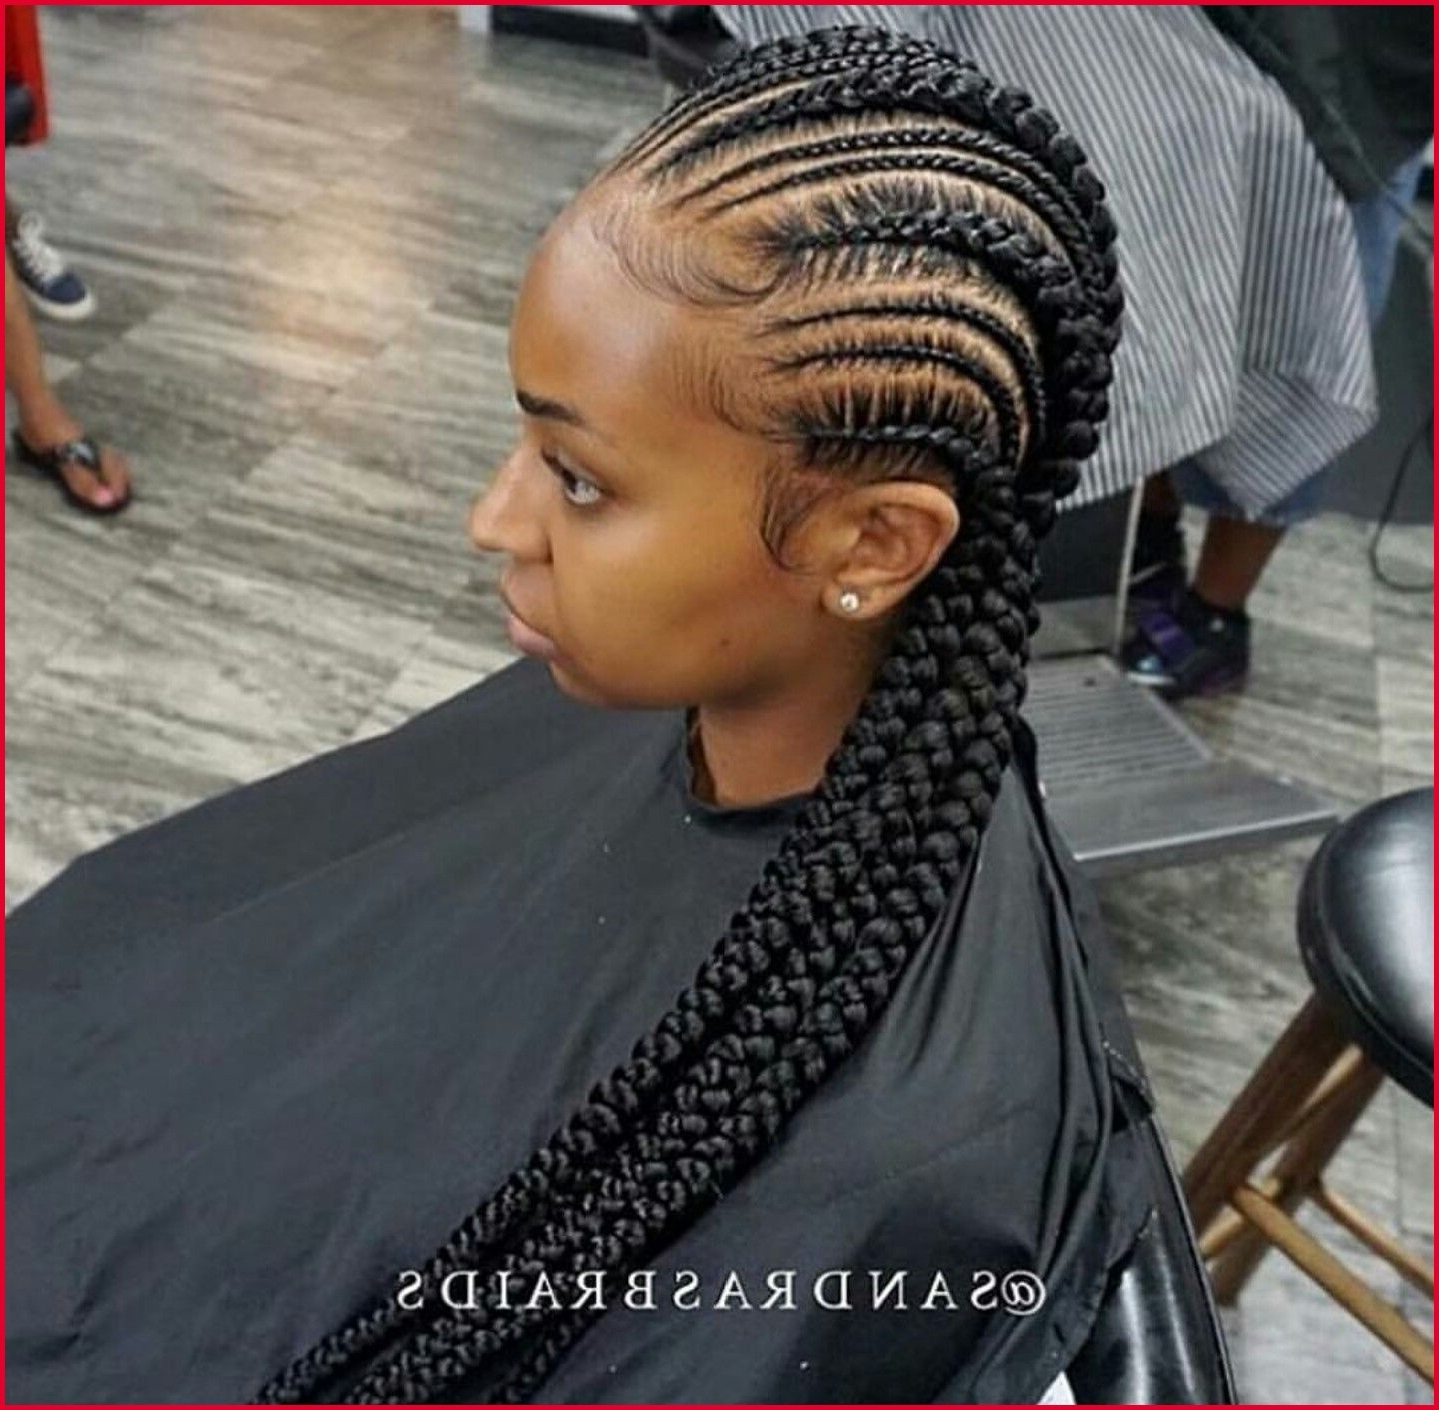 Trendy Small Cornrows Hairstyles In Small Cornrow Hairstyles 23186 Stunningly Cute Ghana Braids Styles (View 13 of 15)